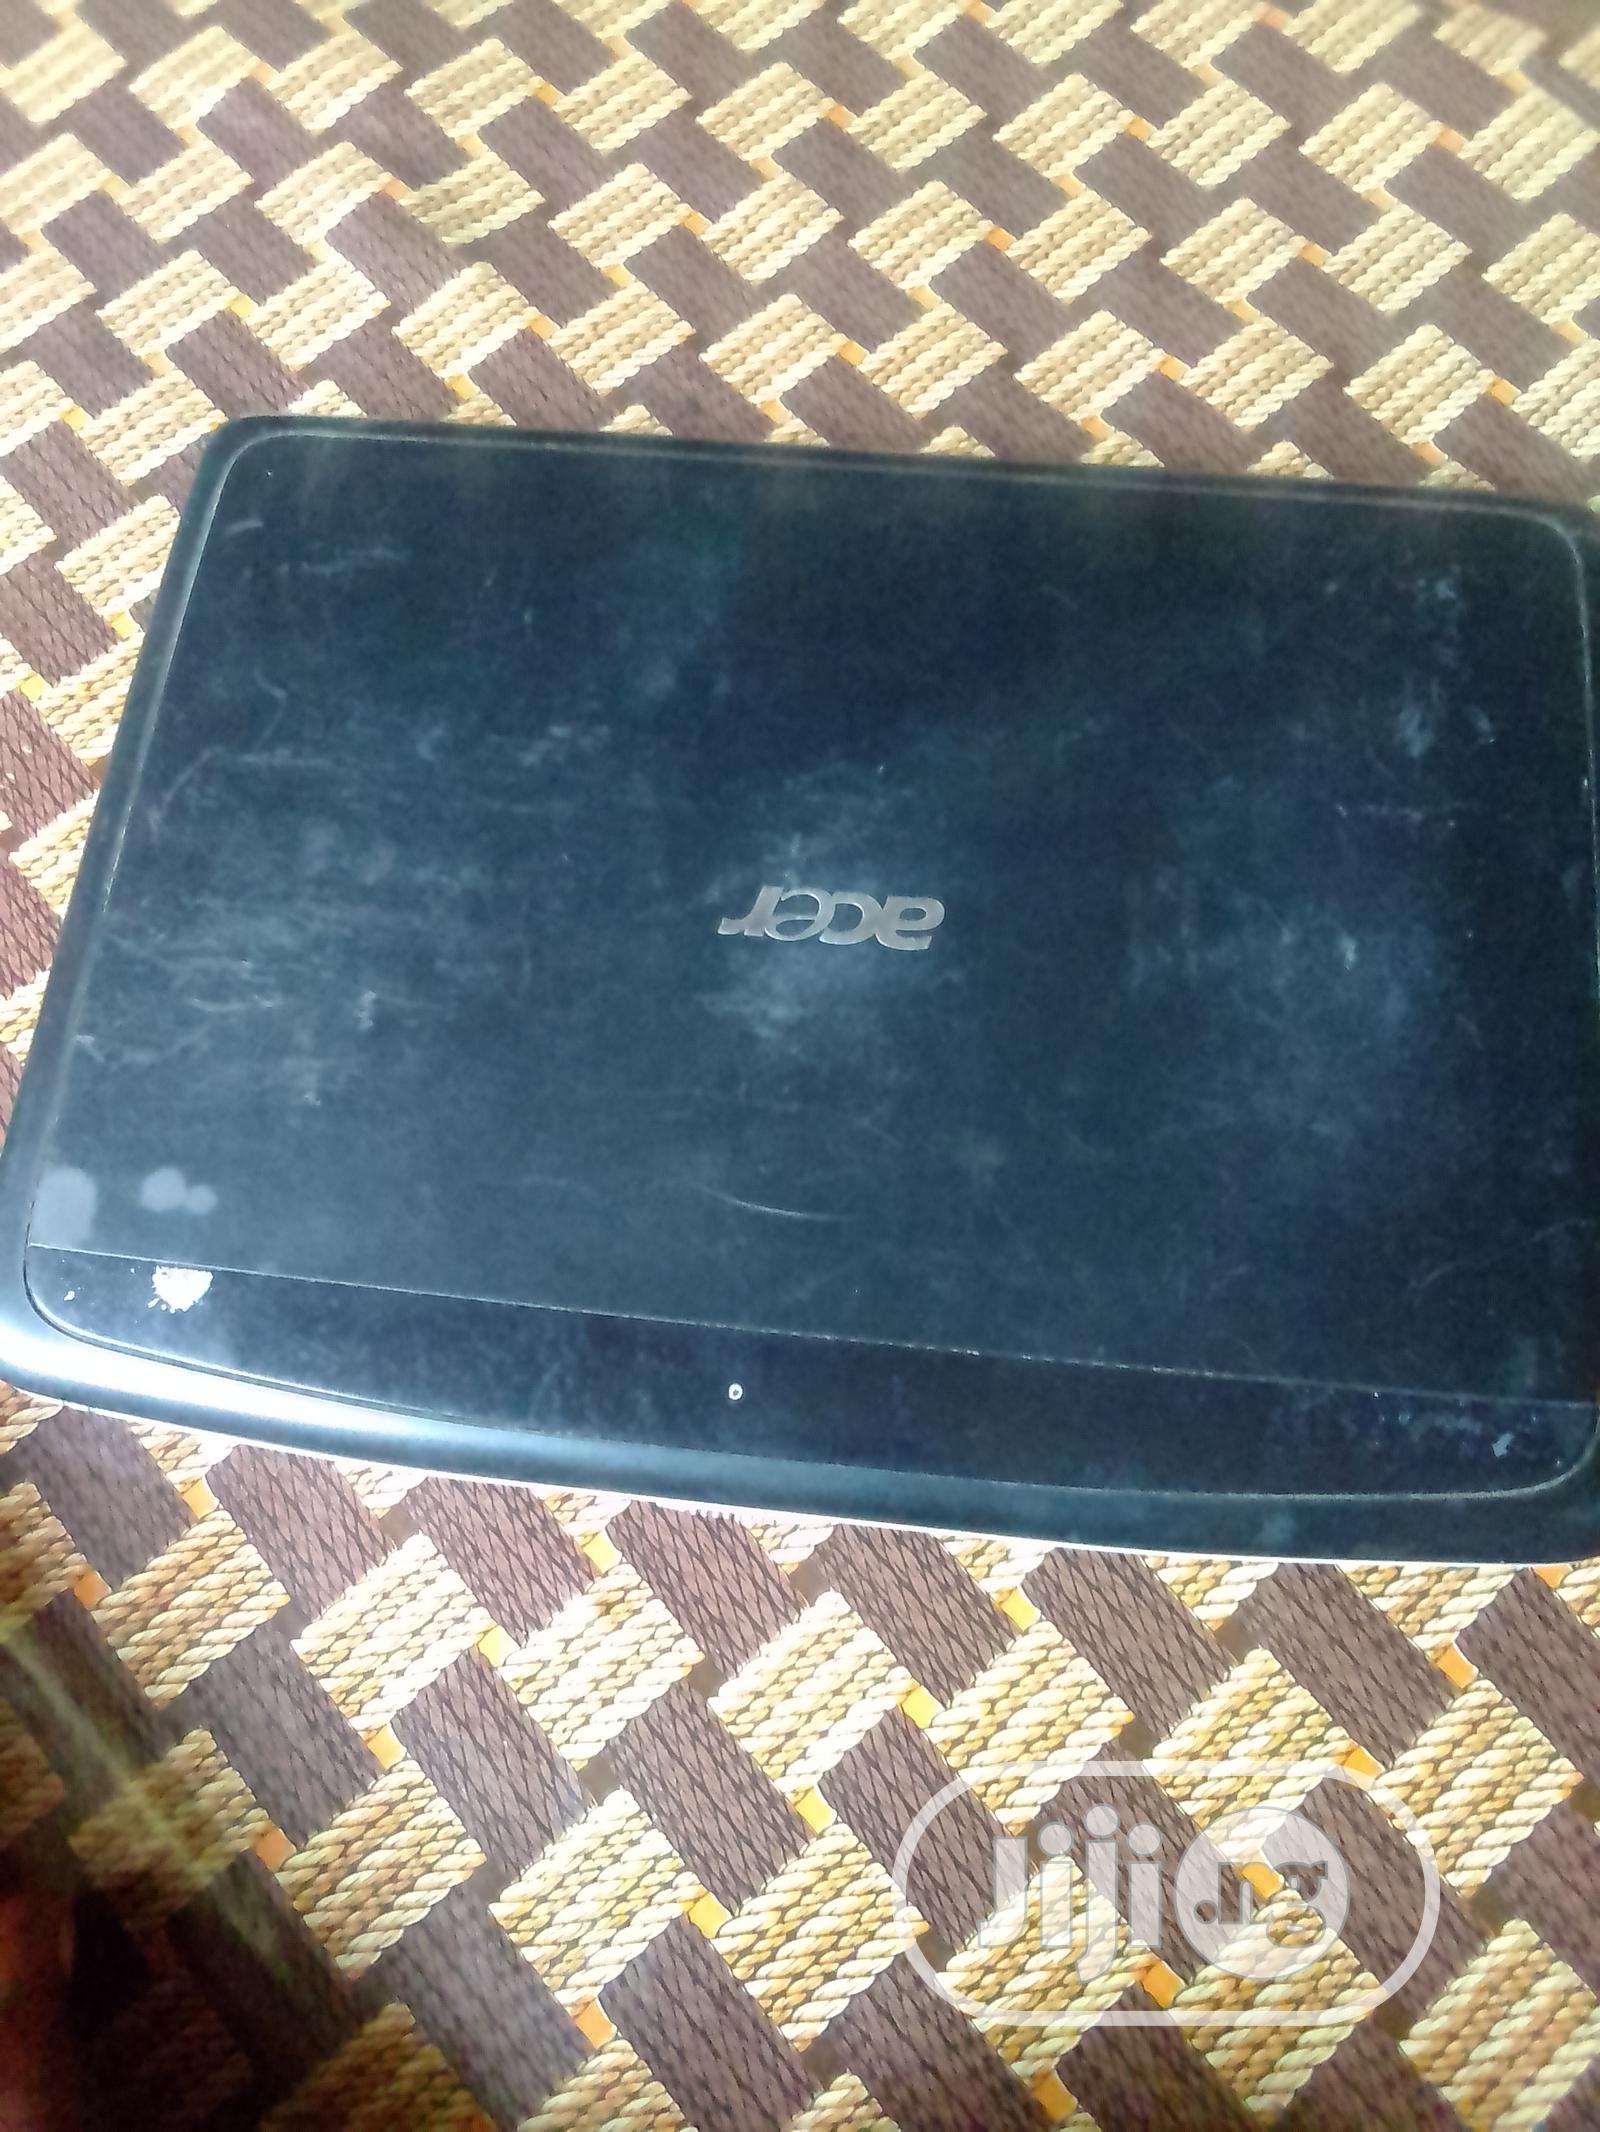 Laptop Acer Aspire 1100X 2GB Intel SSHD (Hybrid) 32GB   Laptops & Computers for sale in Aba North, Abia State, Nigeria